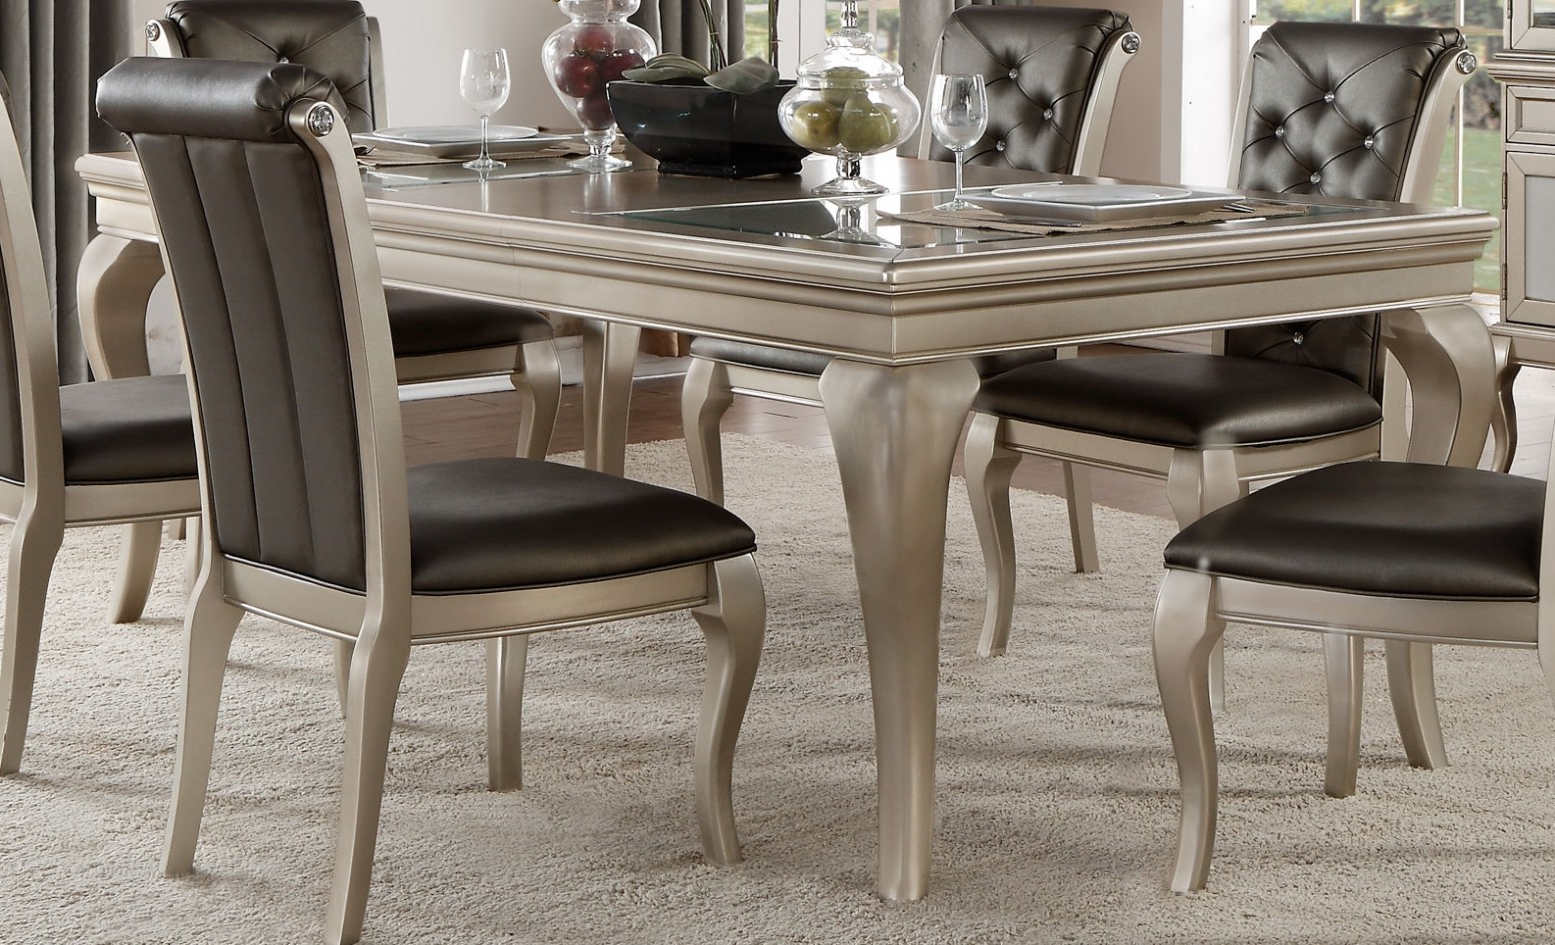 Most Recent Crawford Transitional Rectangular Extendable Dining Table Within Transitional Rectangular Dining Tables (View 5 of 21)